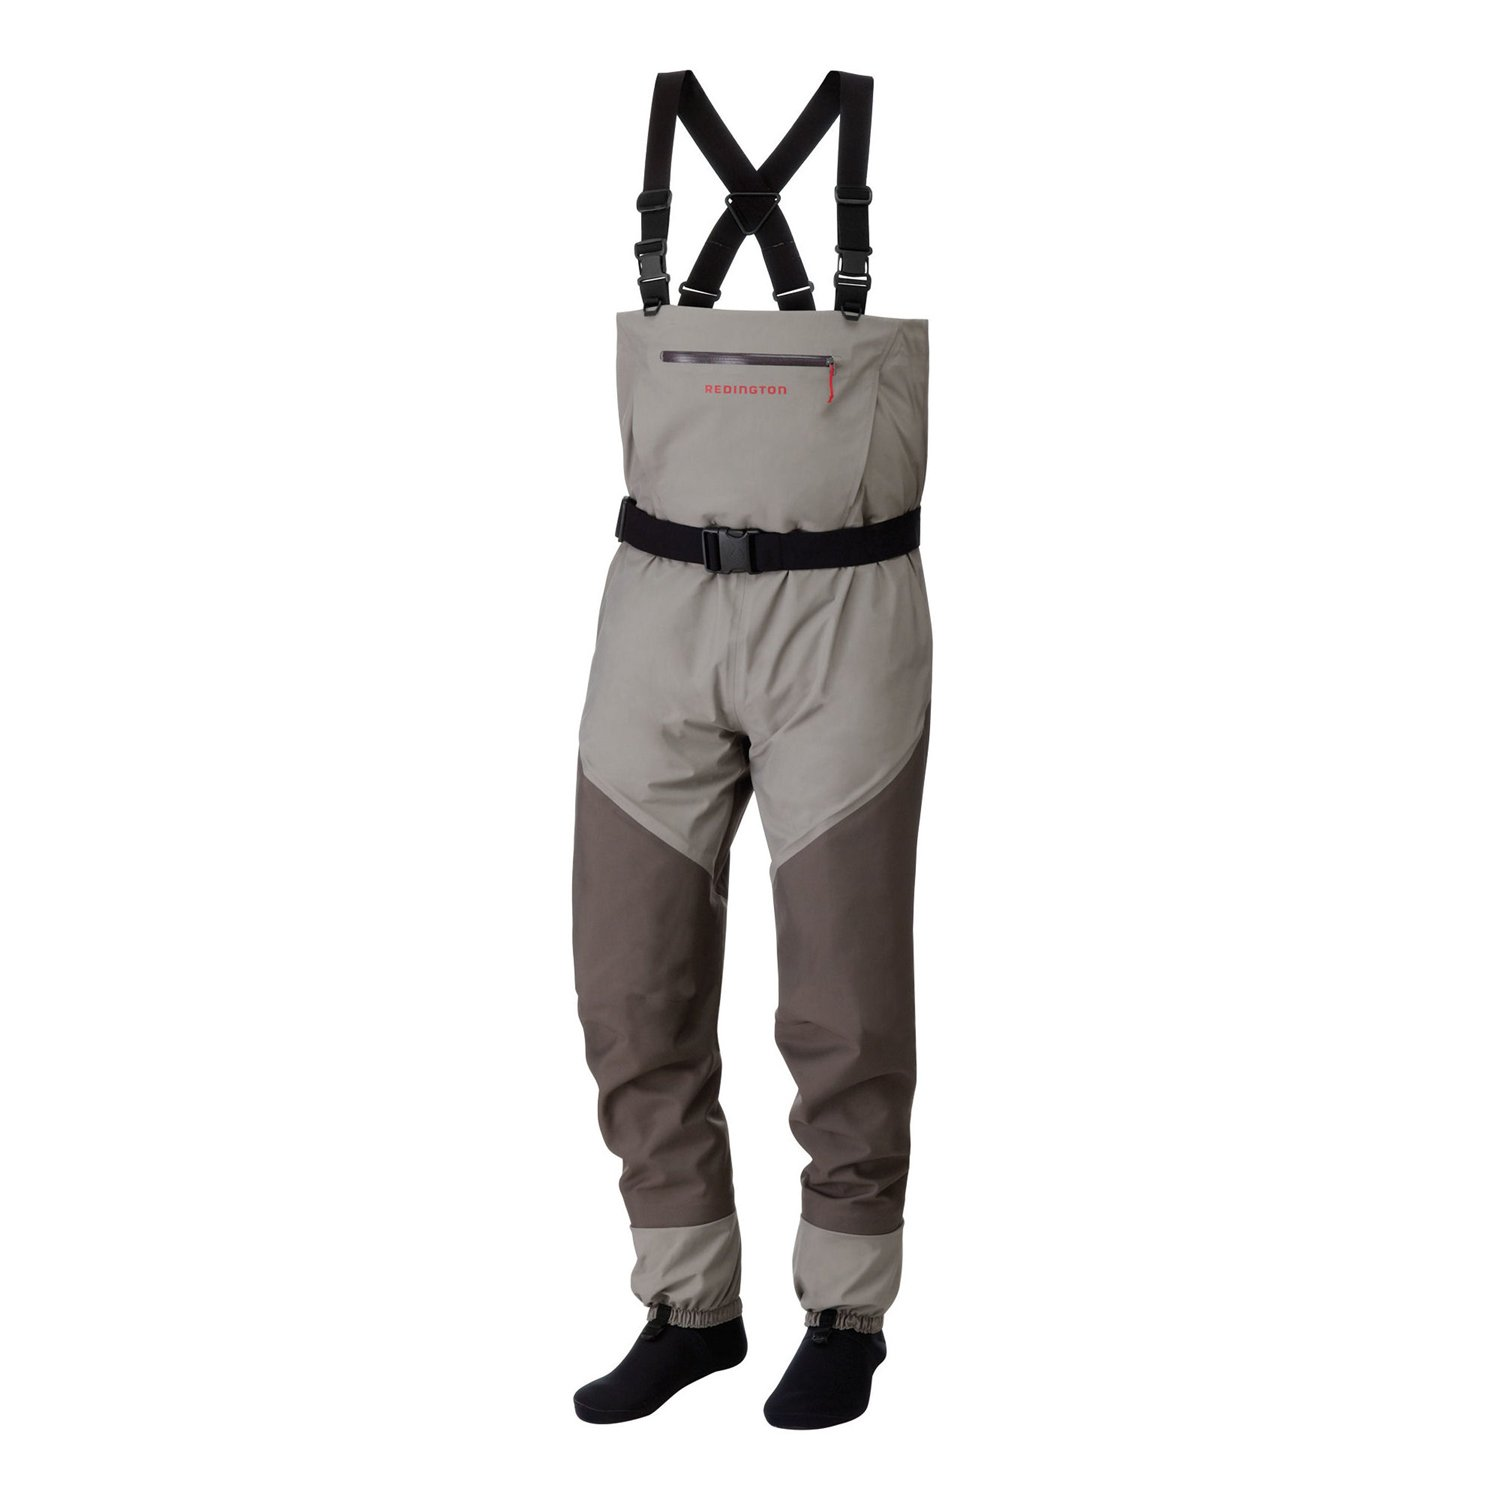 Redington Sonic Pro Stocking Foot Wader